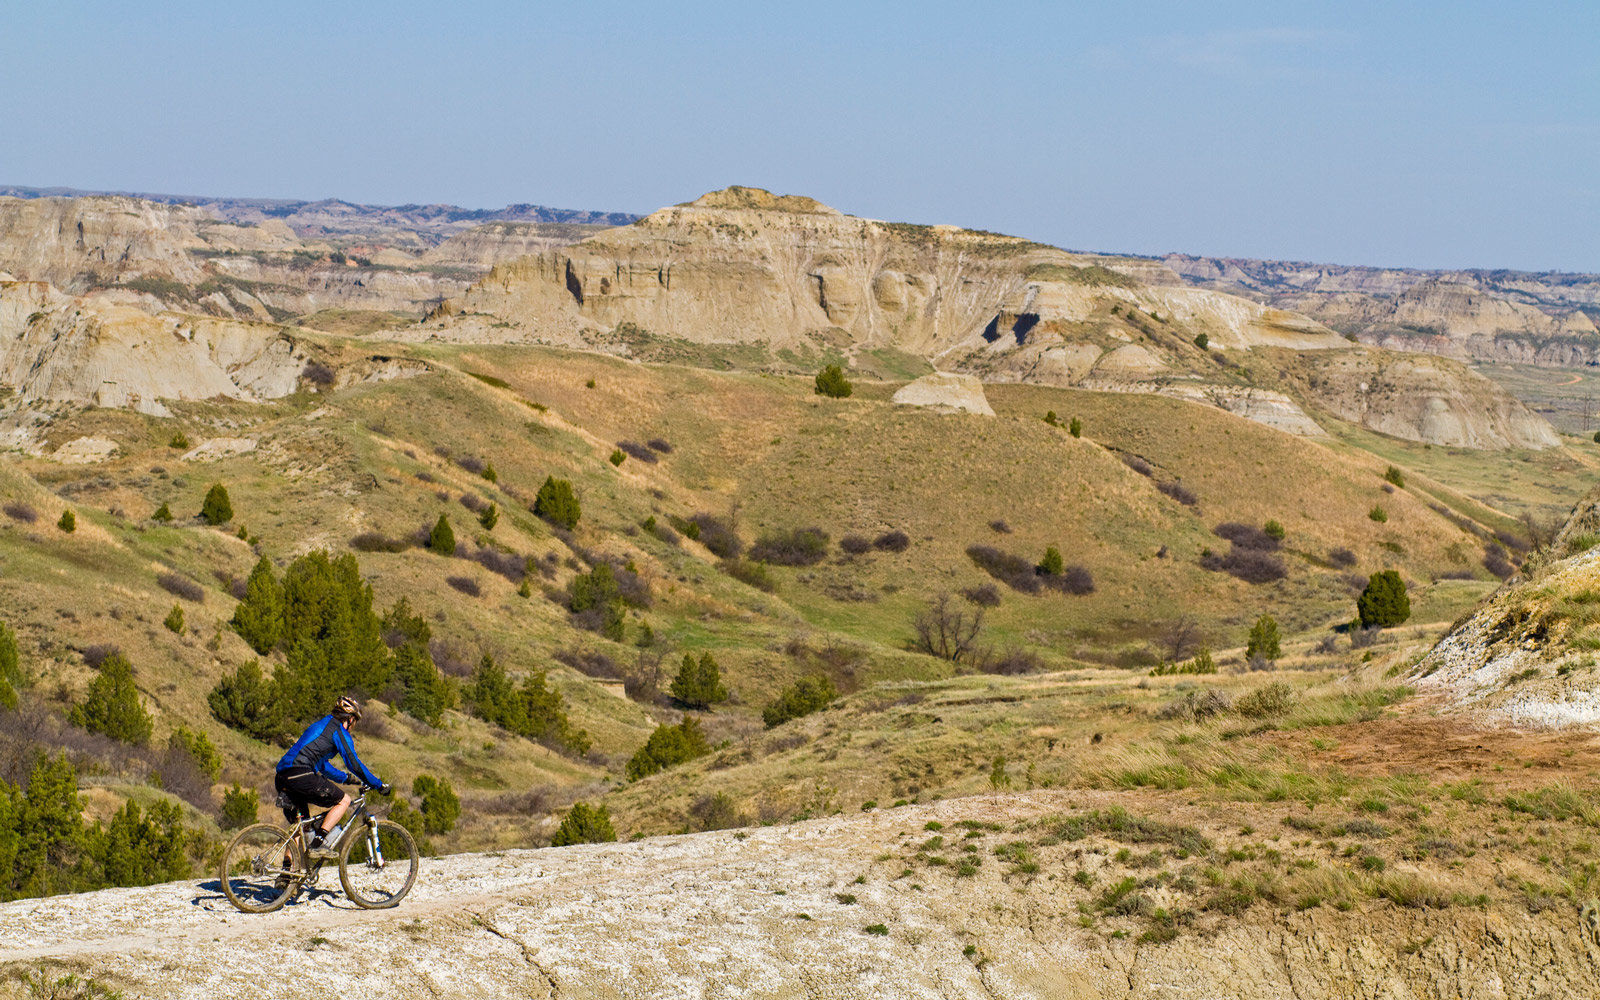 A middle aged man mountain bikes the  single track of the Maah Daah Hey Trail, North Dakota